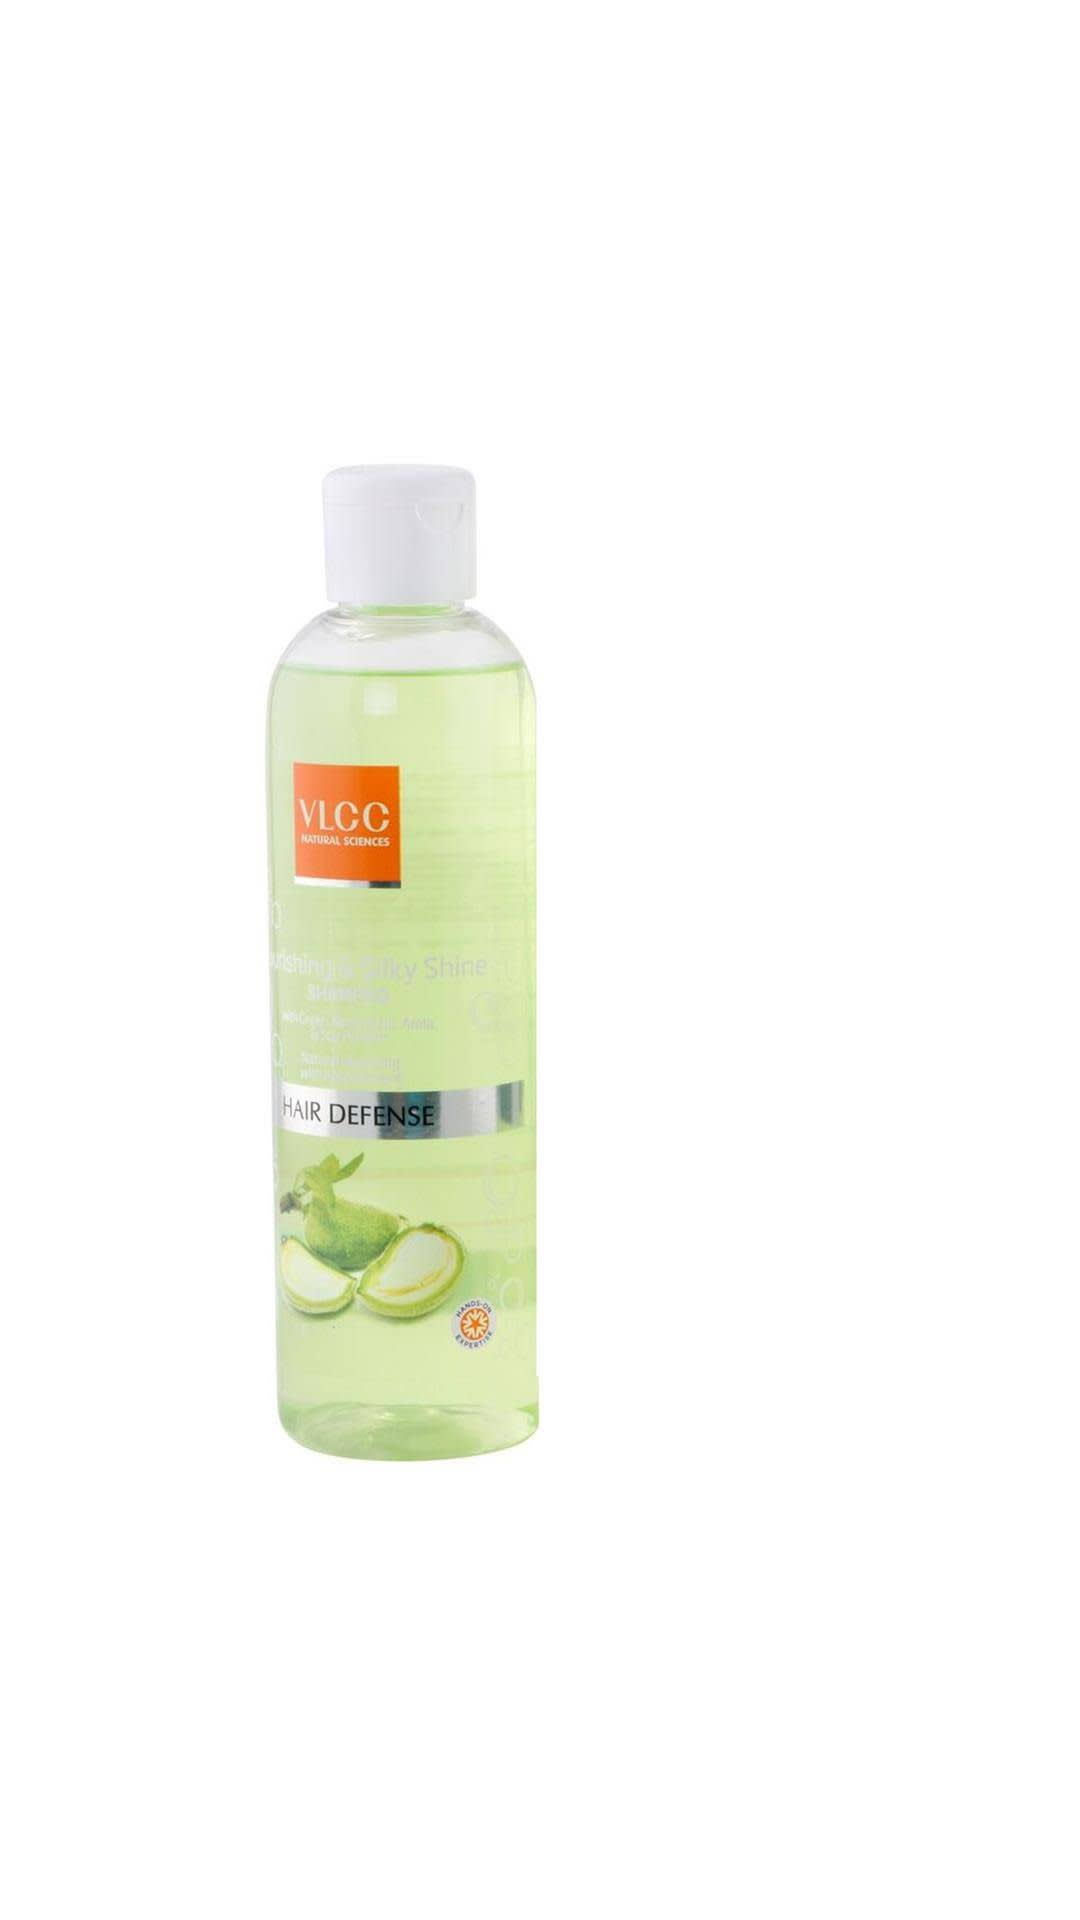 Buy 2 & Get 60% Cashback on VLCC Hair Fall Control Shampoo -350 ml Pack of 1